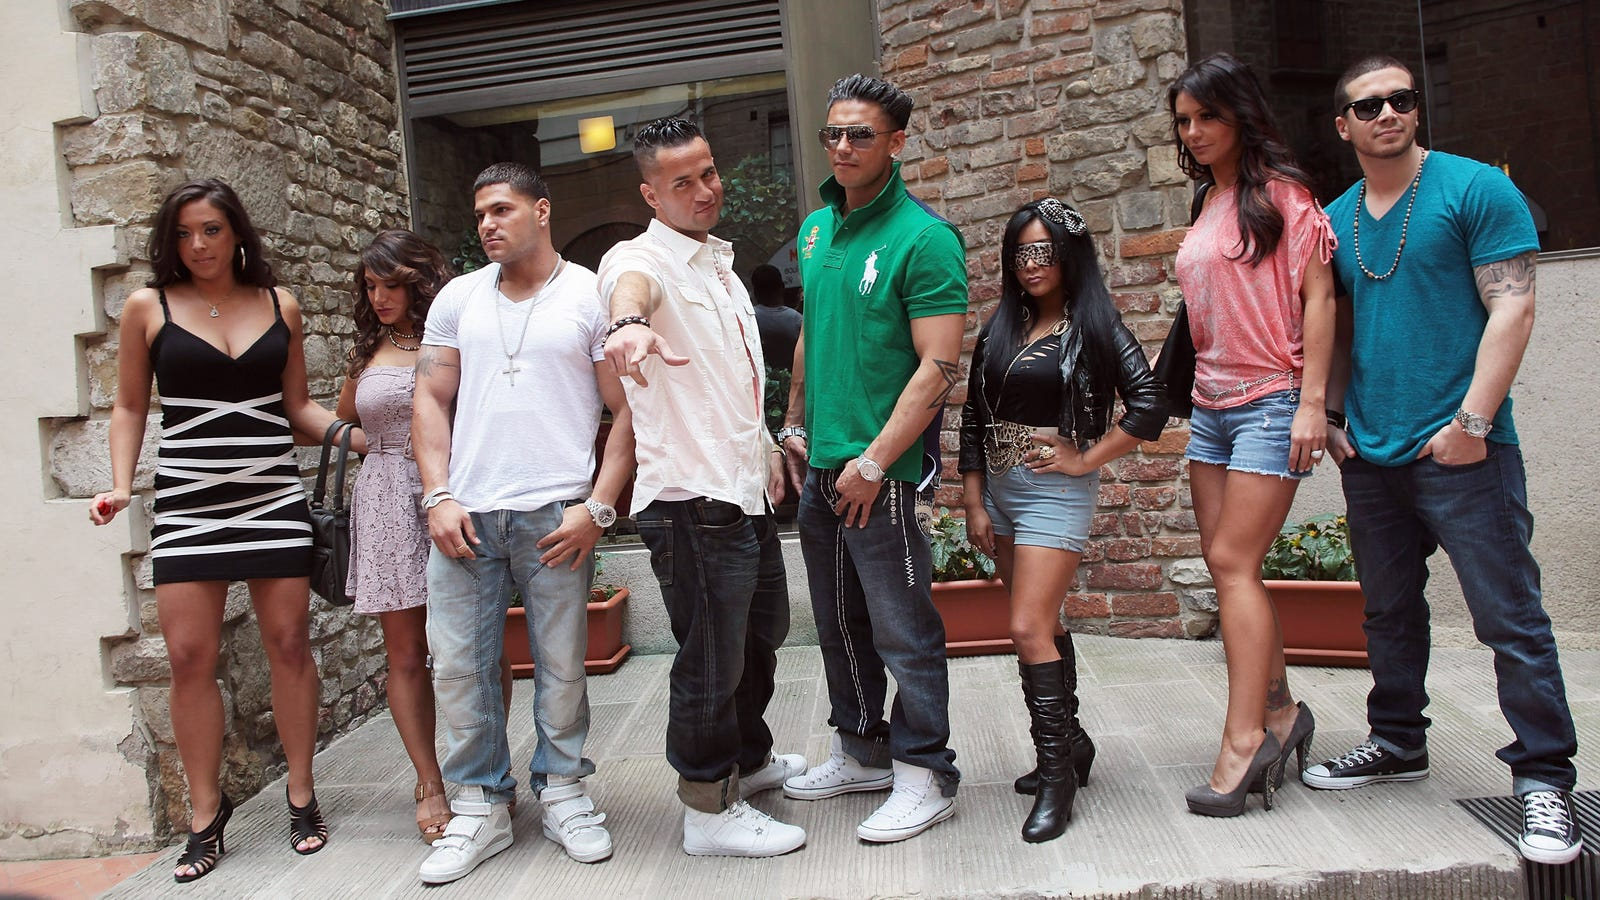 ai4xswfhlmck0p1vqbce - The Creator of Jersey Shore On Being a Proud 'Guidette' and Making The Finest Actuality TV within the Biz